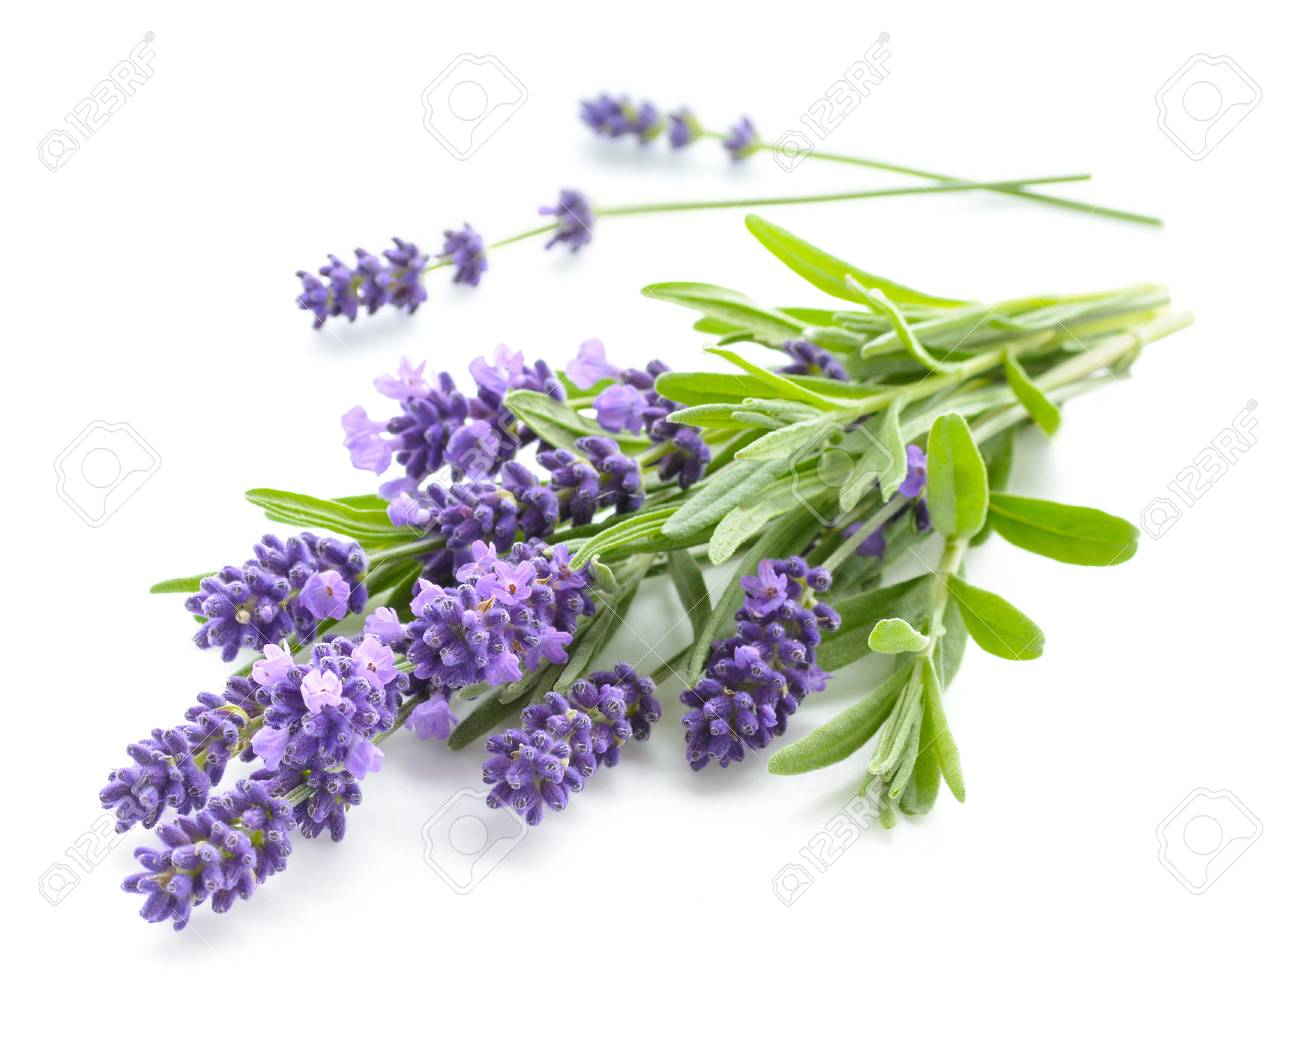 Lavender bunch on a white - 90611705